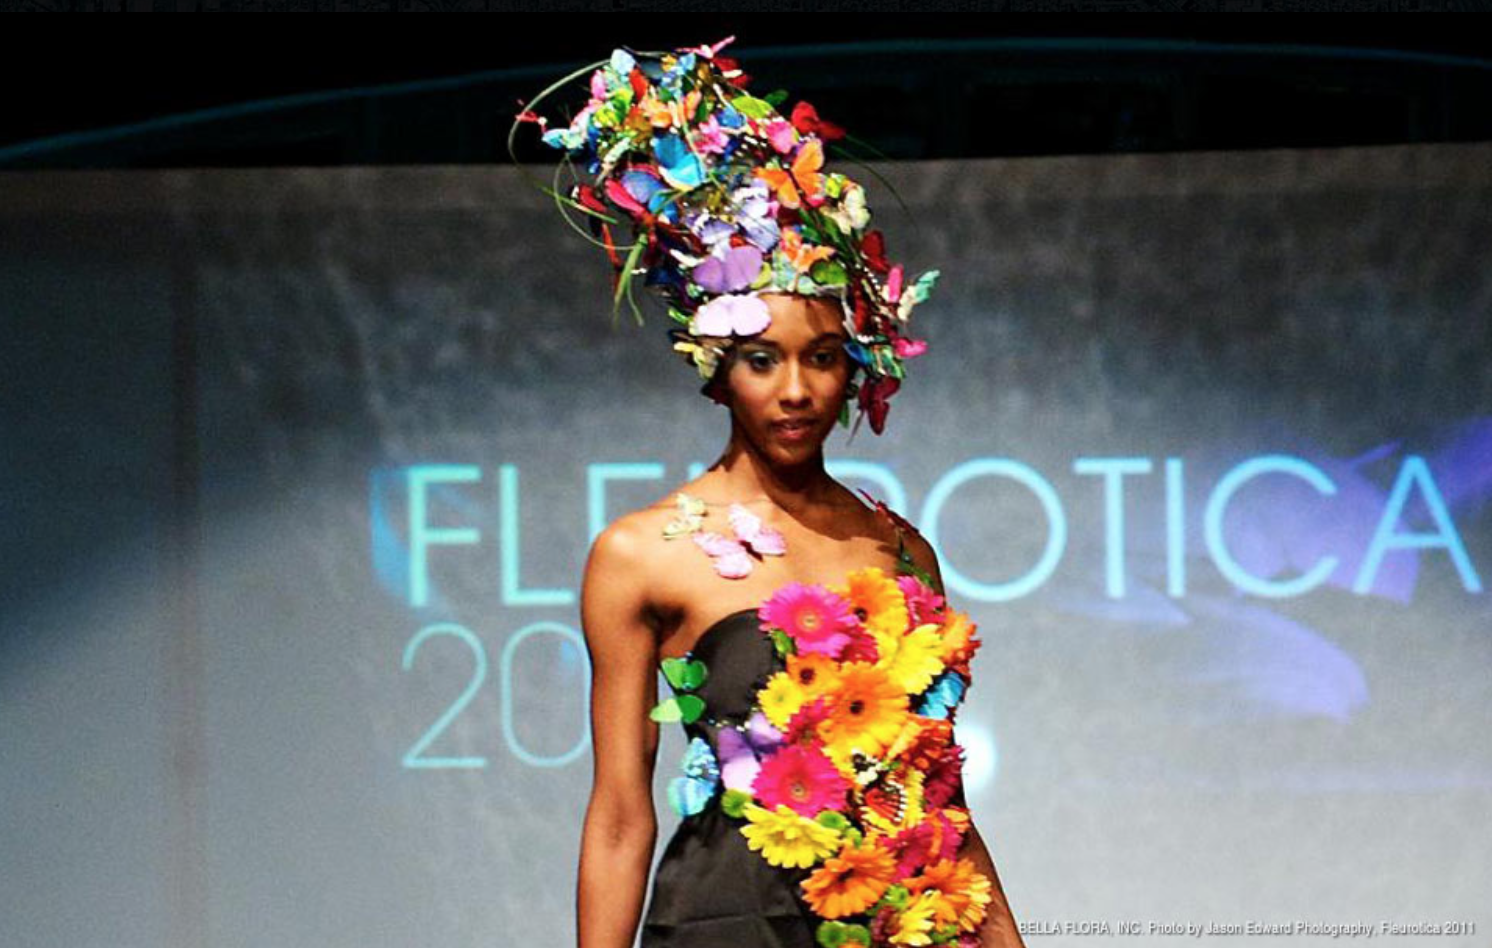 Flowers, Food and Fashion at Evening in Bloom featuring FLEUROTICA lead image